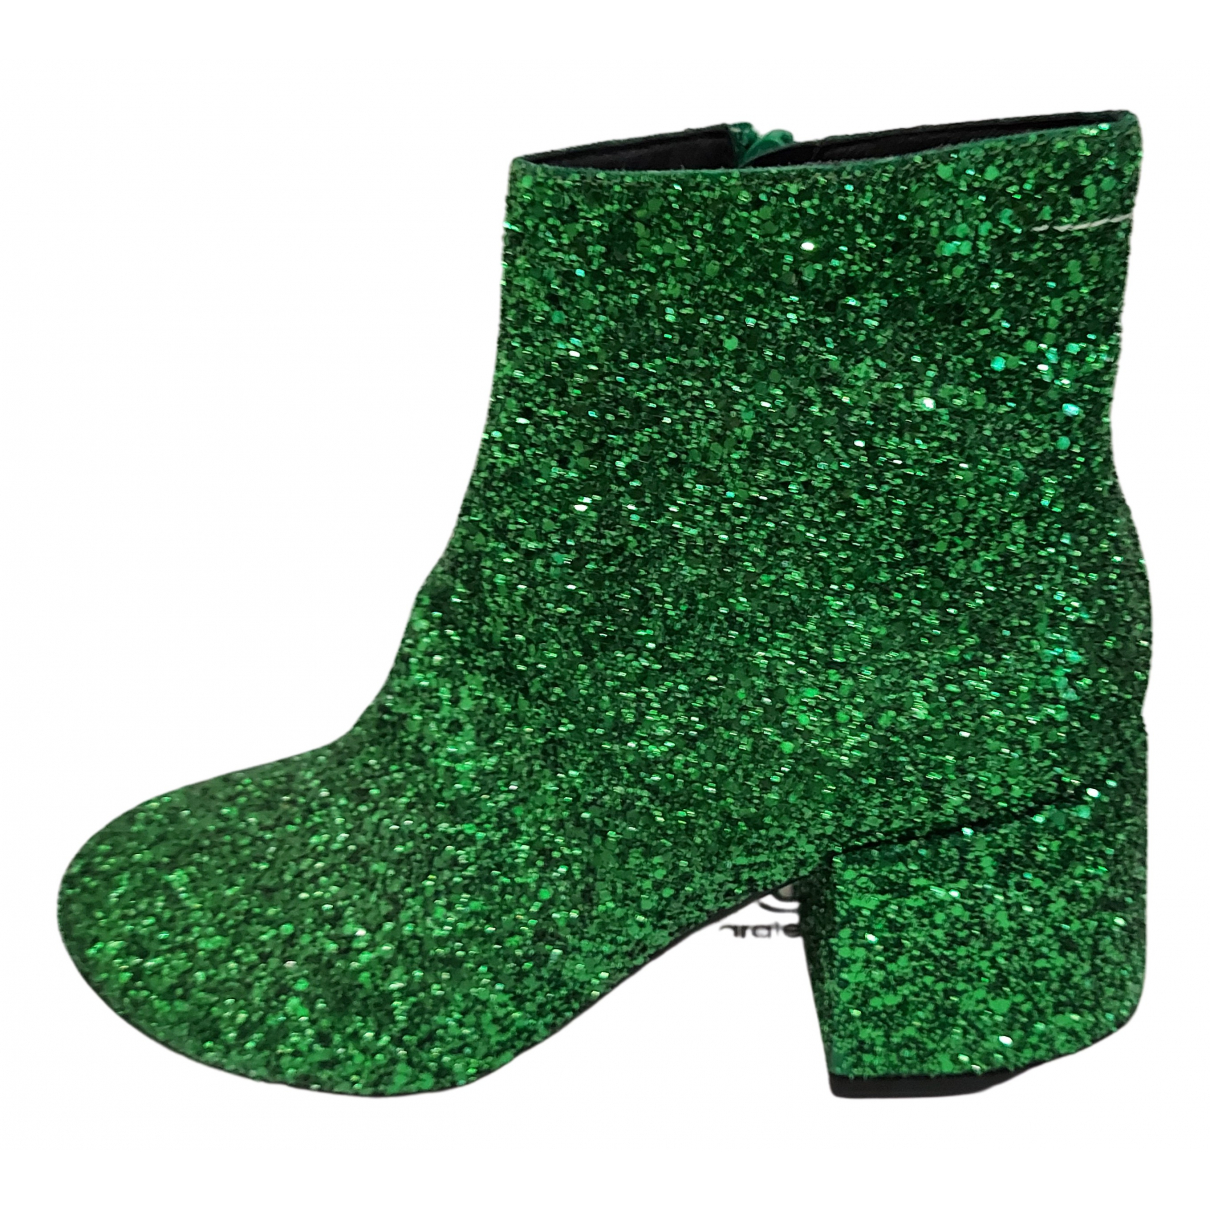 Mm6 N Green Ankle boots for Women 37 EU